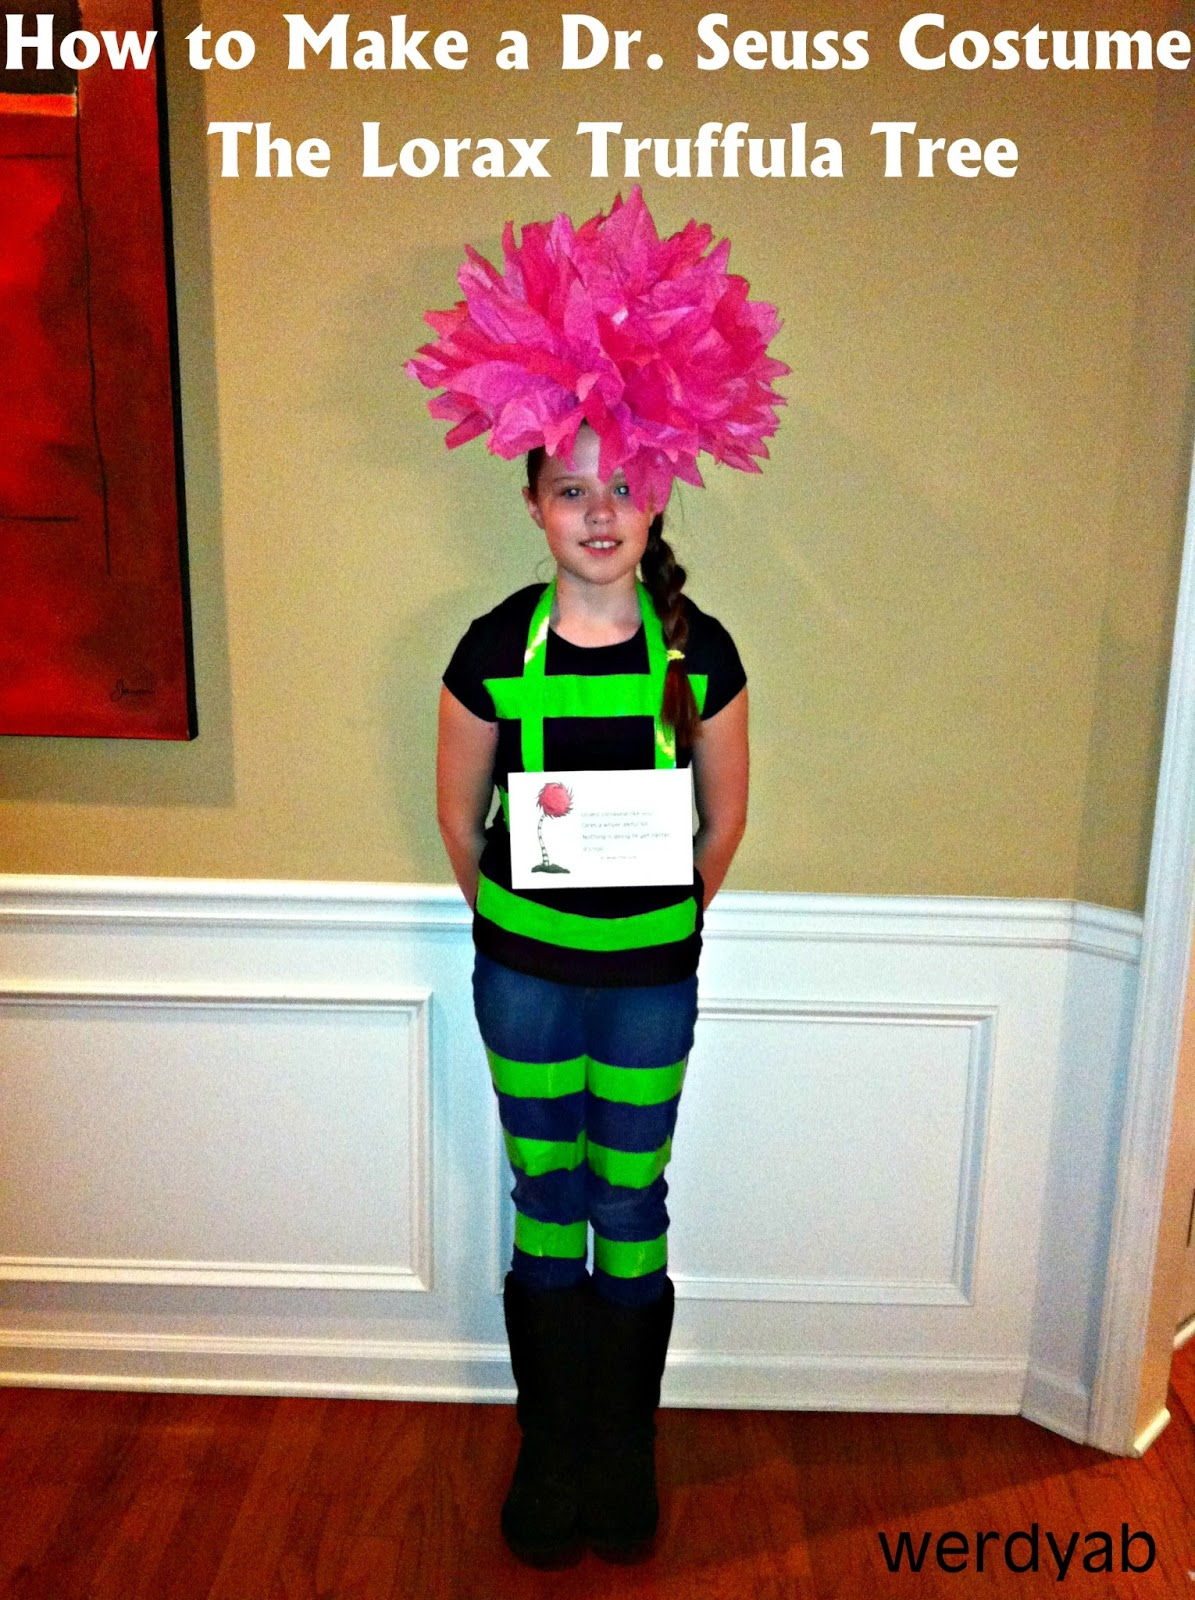 This is an easy inexpensive costume idea to celebrate Dr. Seussu0027 birthday and Read Across America Week or you know a normal Tuesday is totally fine too.  sc 1 st  Werdyab Blog & Werdyab Blog: How To Make a Dr. Seuss Costume: The Lorax Truffula Tree